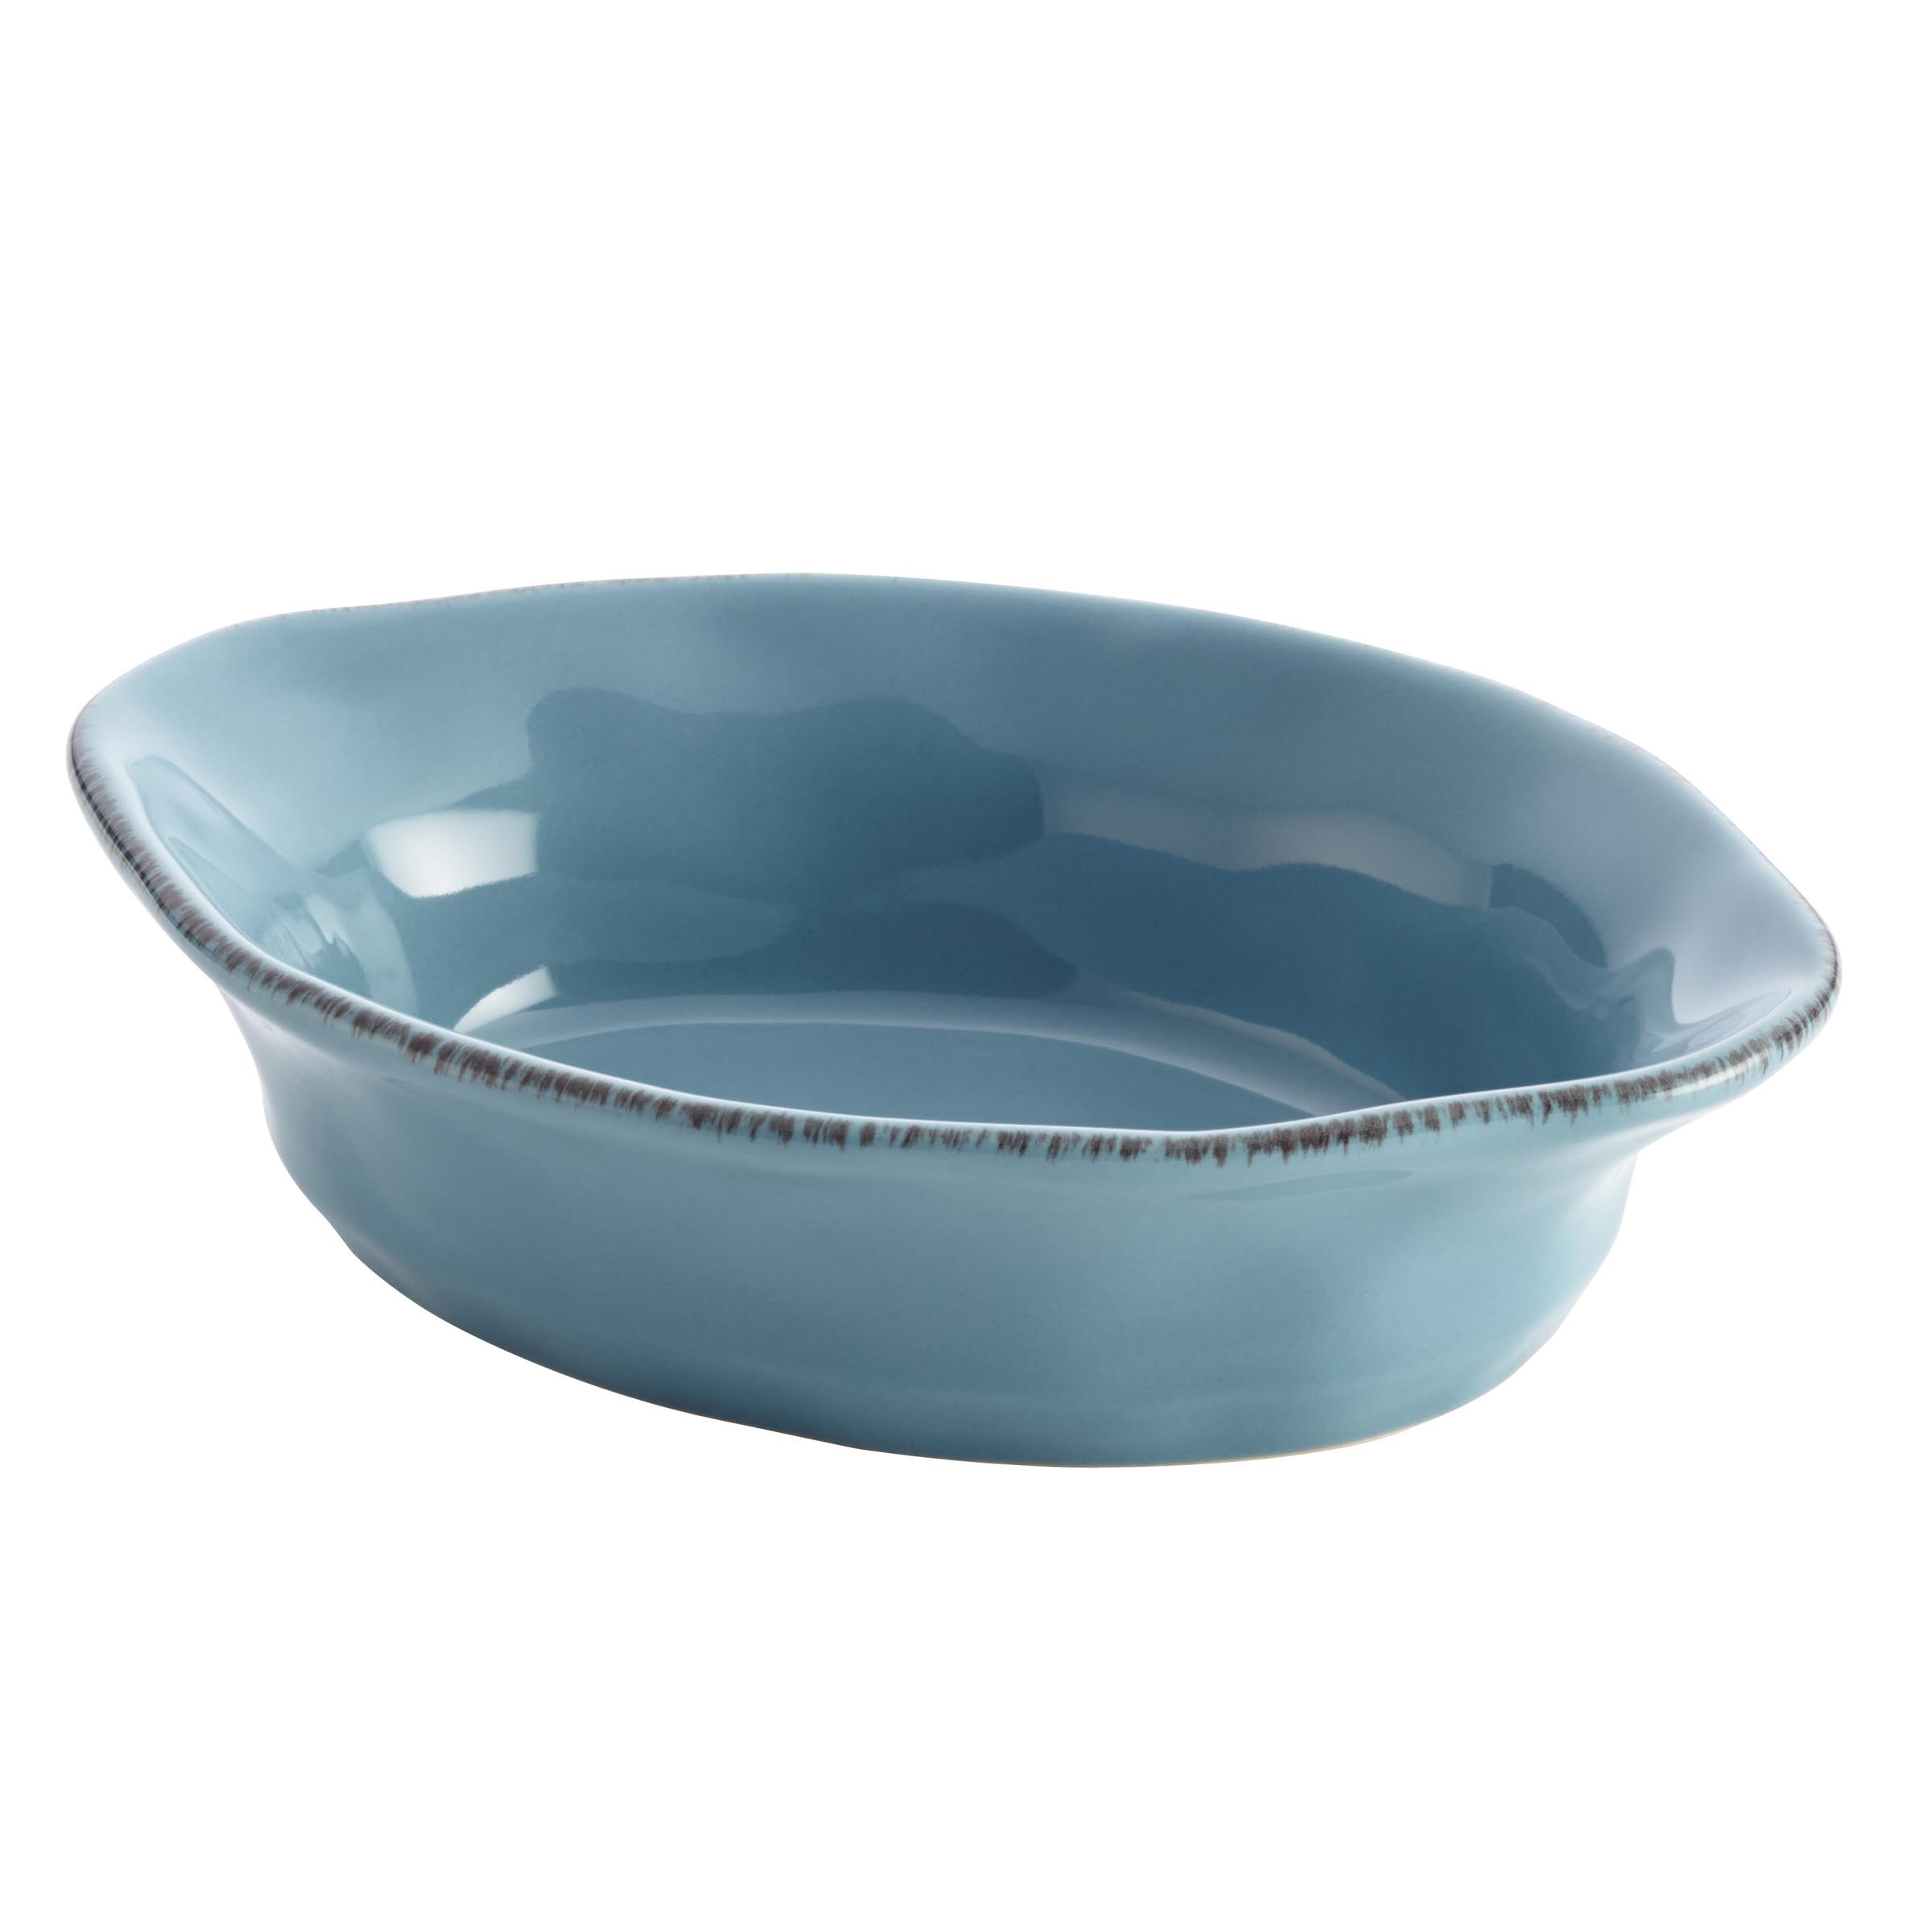 Rachael Ray Cucina Collection Agave Blue Oval Stoneware Au Gratin, 12 Ounce